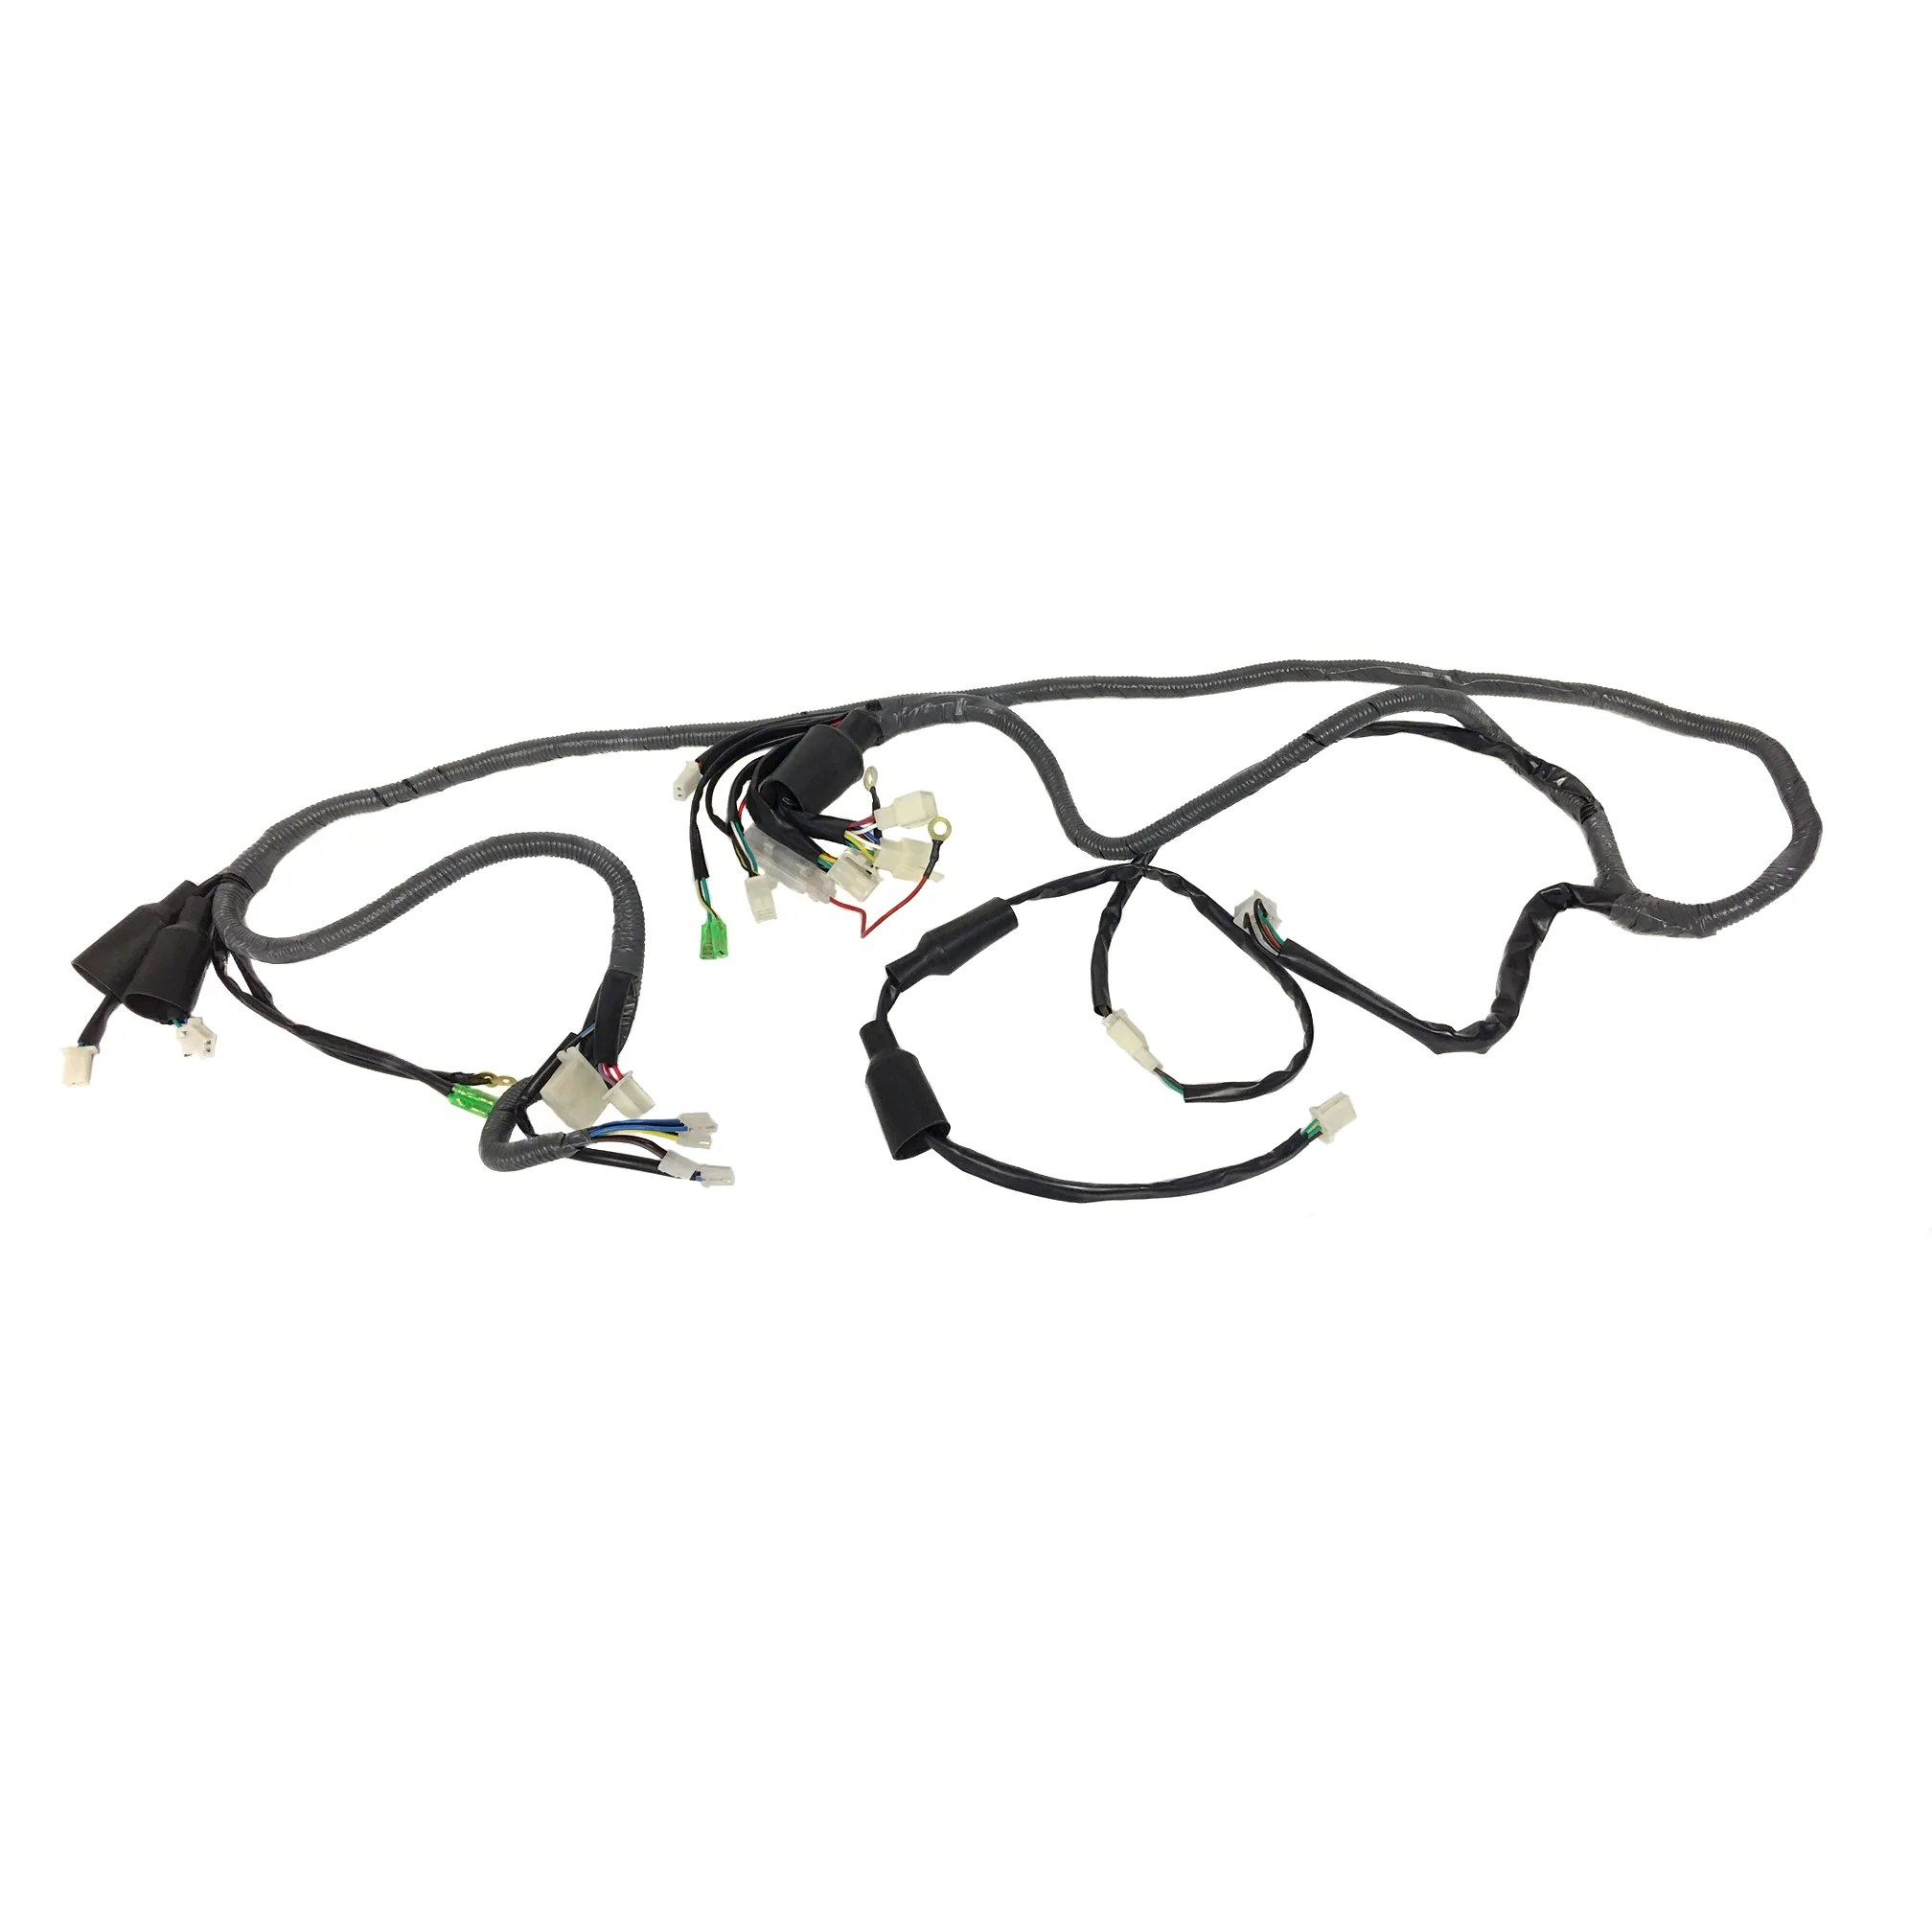 hight resolution of wiring harness for tao tao 110cc gk110 go kart vmc chinese parts